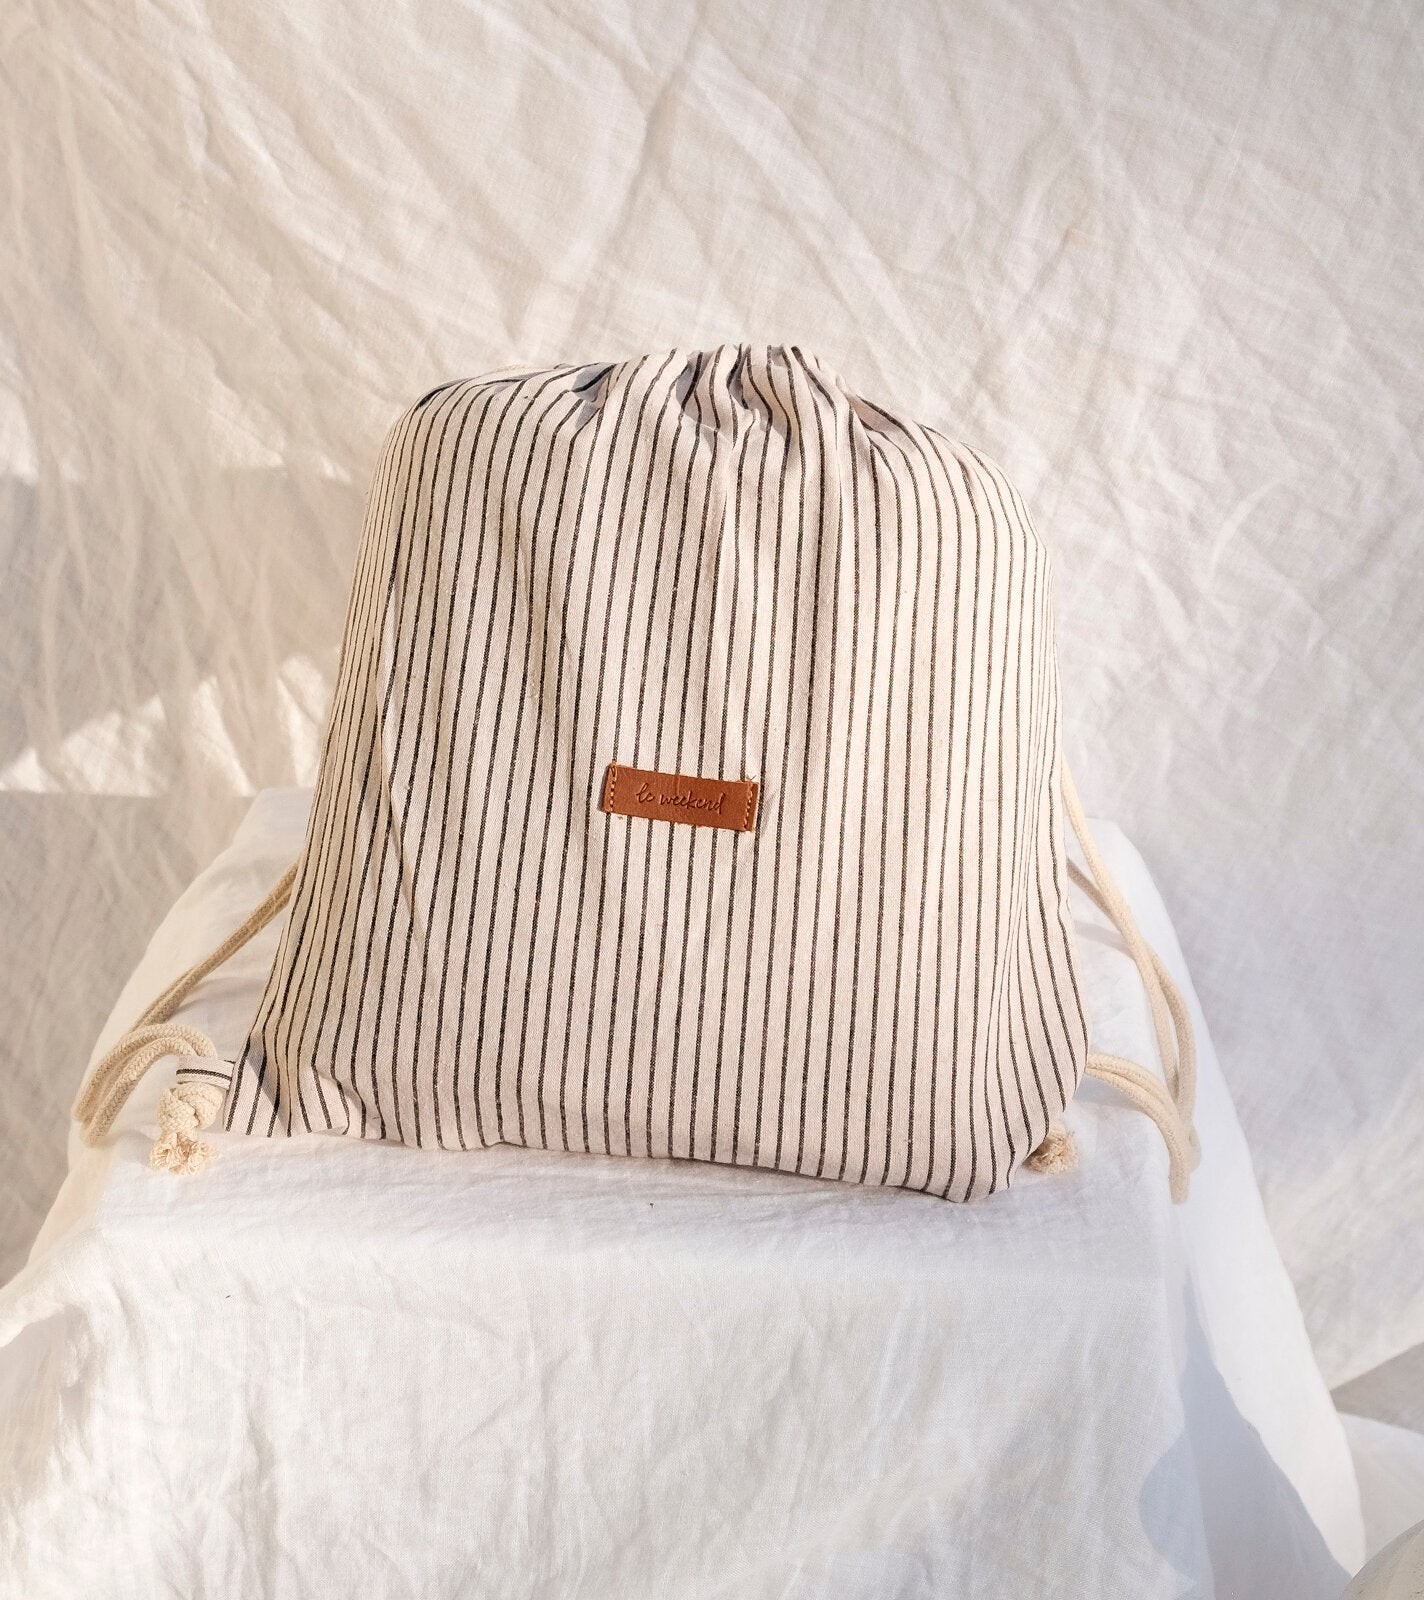 FRENCH PINSTRIPE LINEN PICNIC RUG